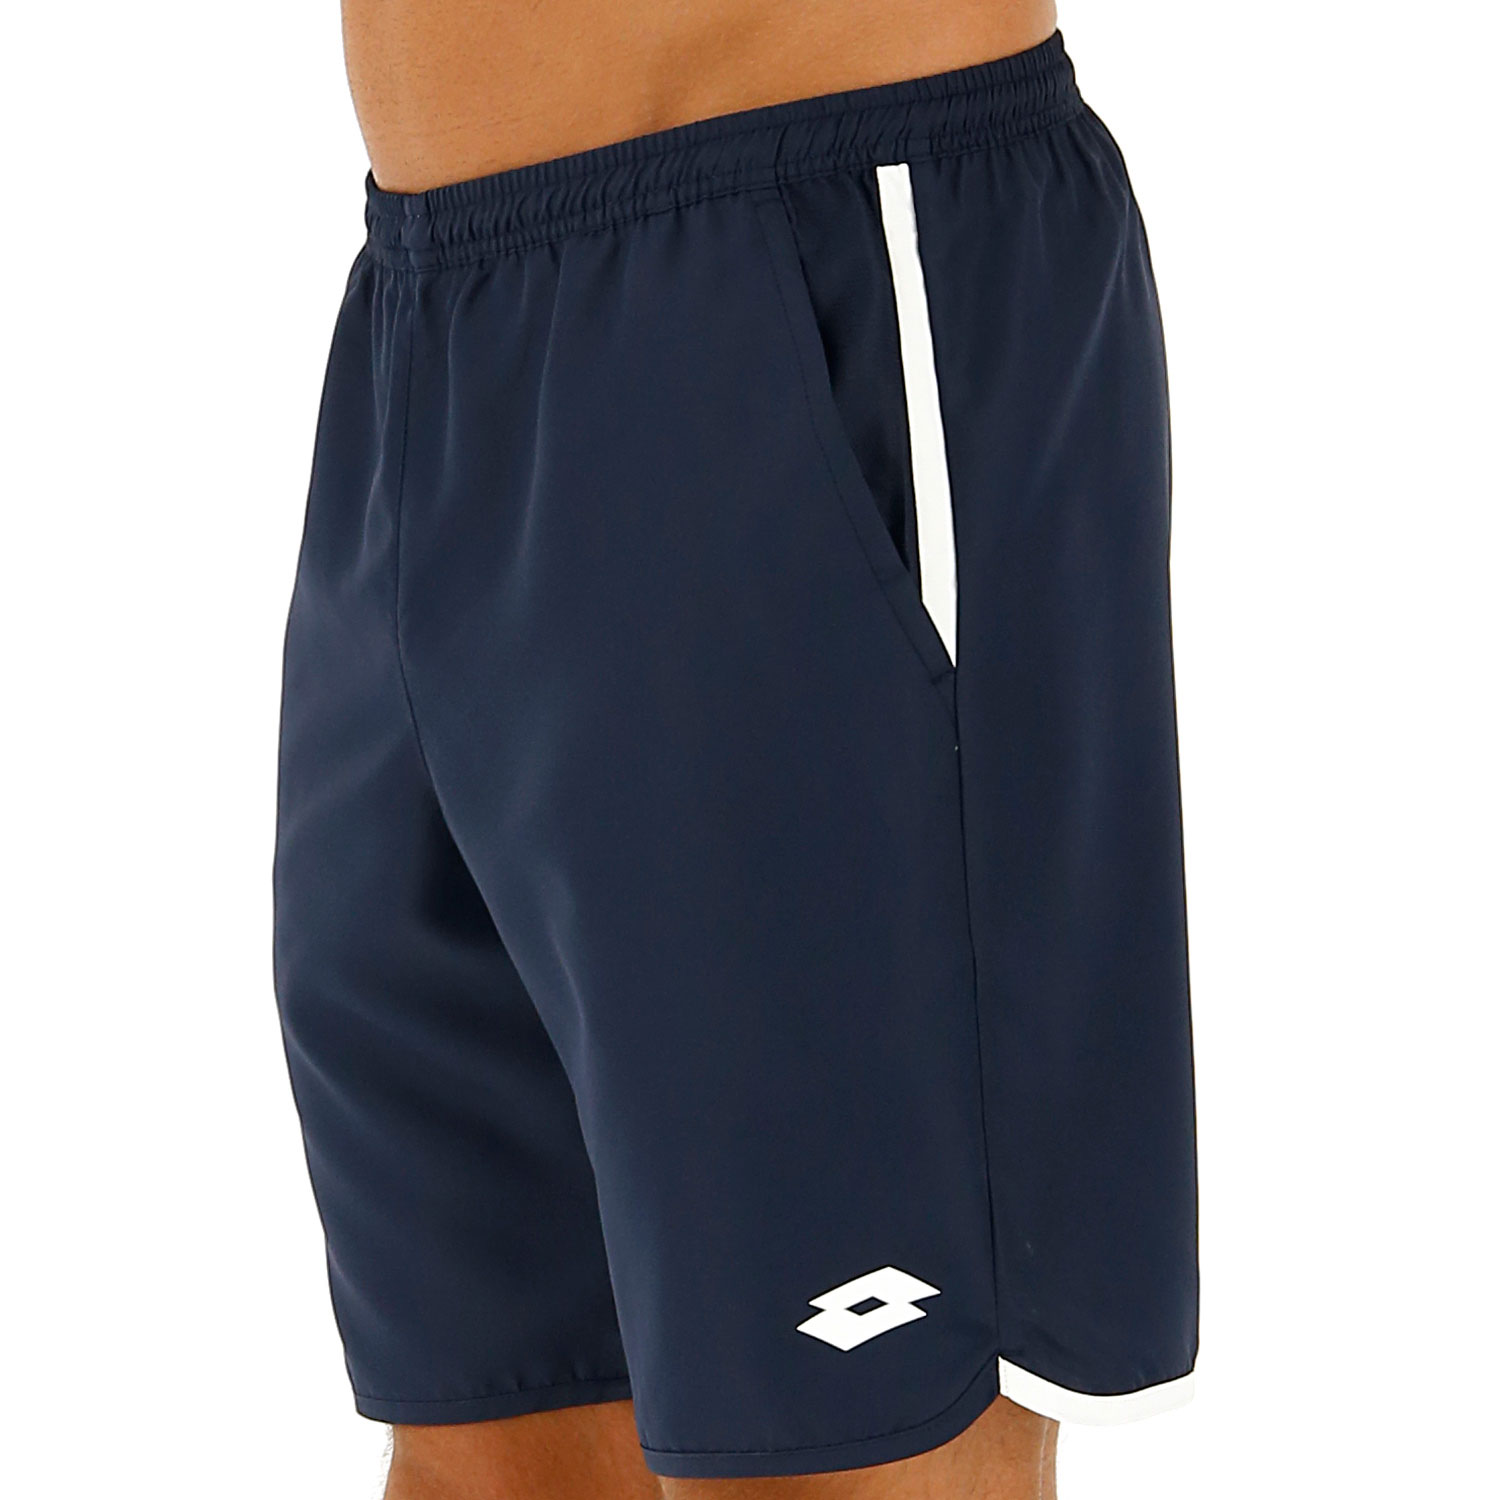 Lotto Squadra 7in Shorts - Navy Blue